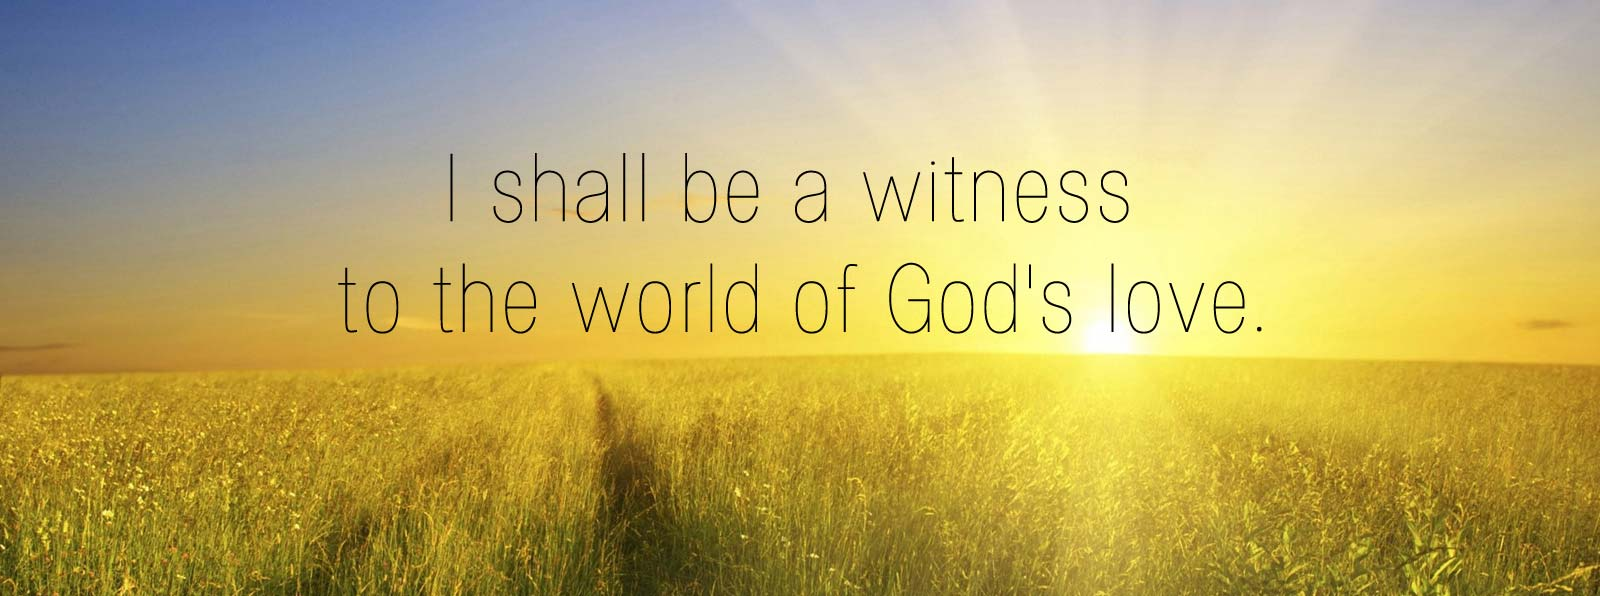 Be a Witness of God's Love